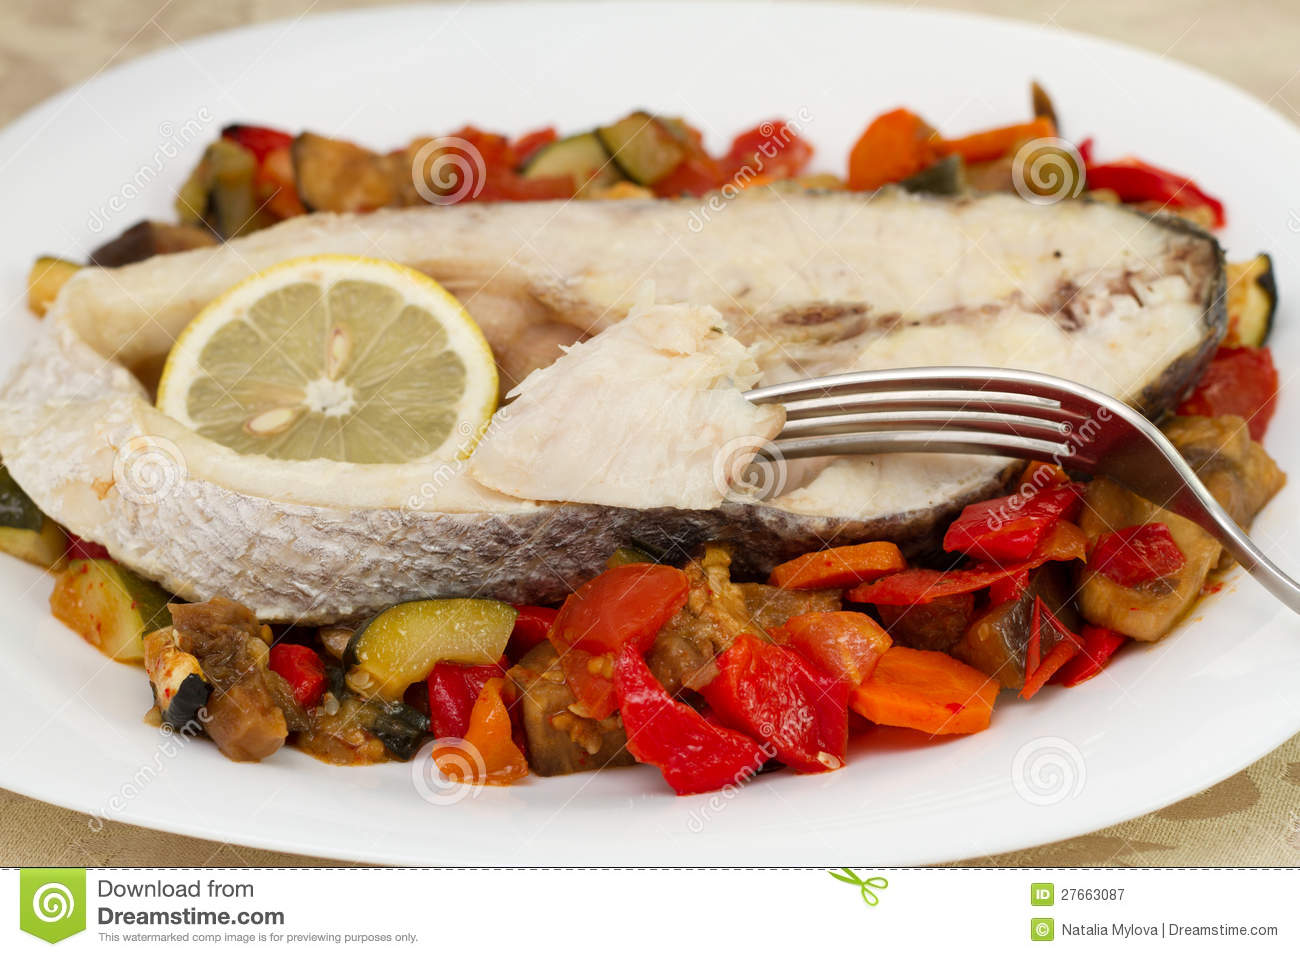 Boiled fish with vegetables stock image image 27663087 for What vegetables go with fish